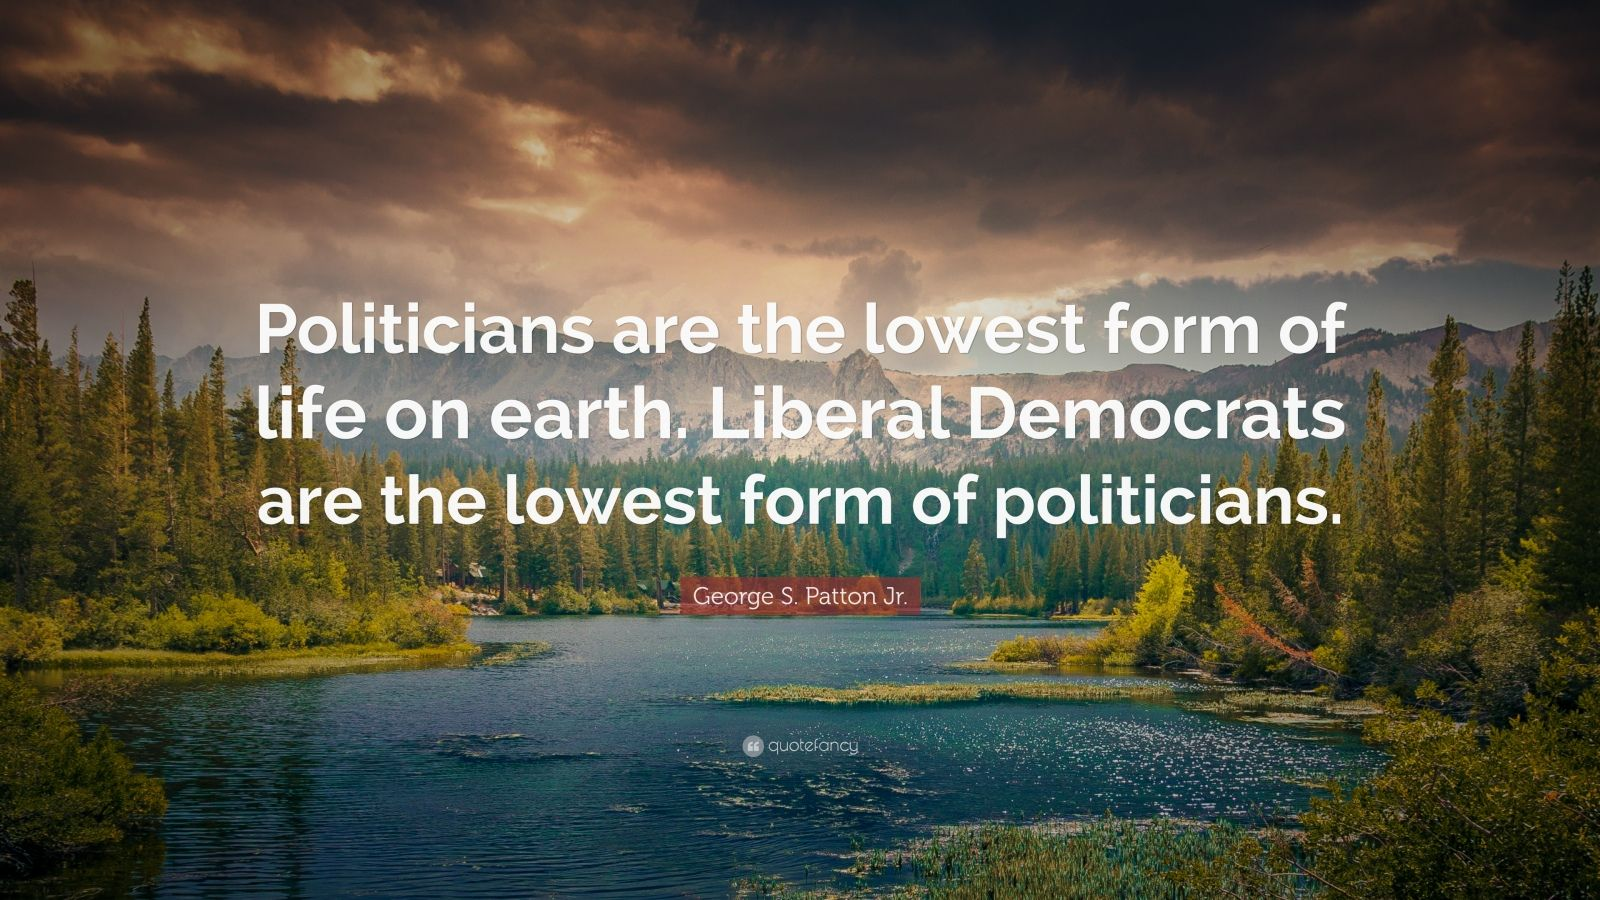 Friendship Quotes Wallpapers For Desktop George S Patton Jr Quote Politicians Are The Lowest